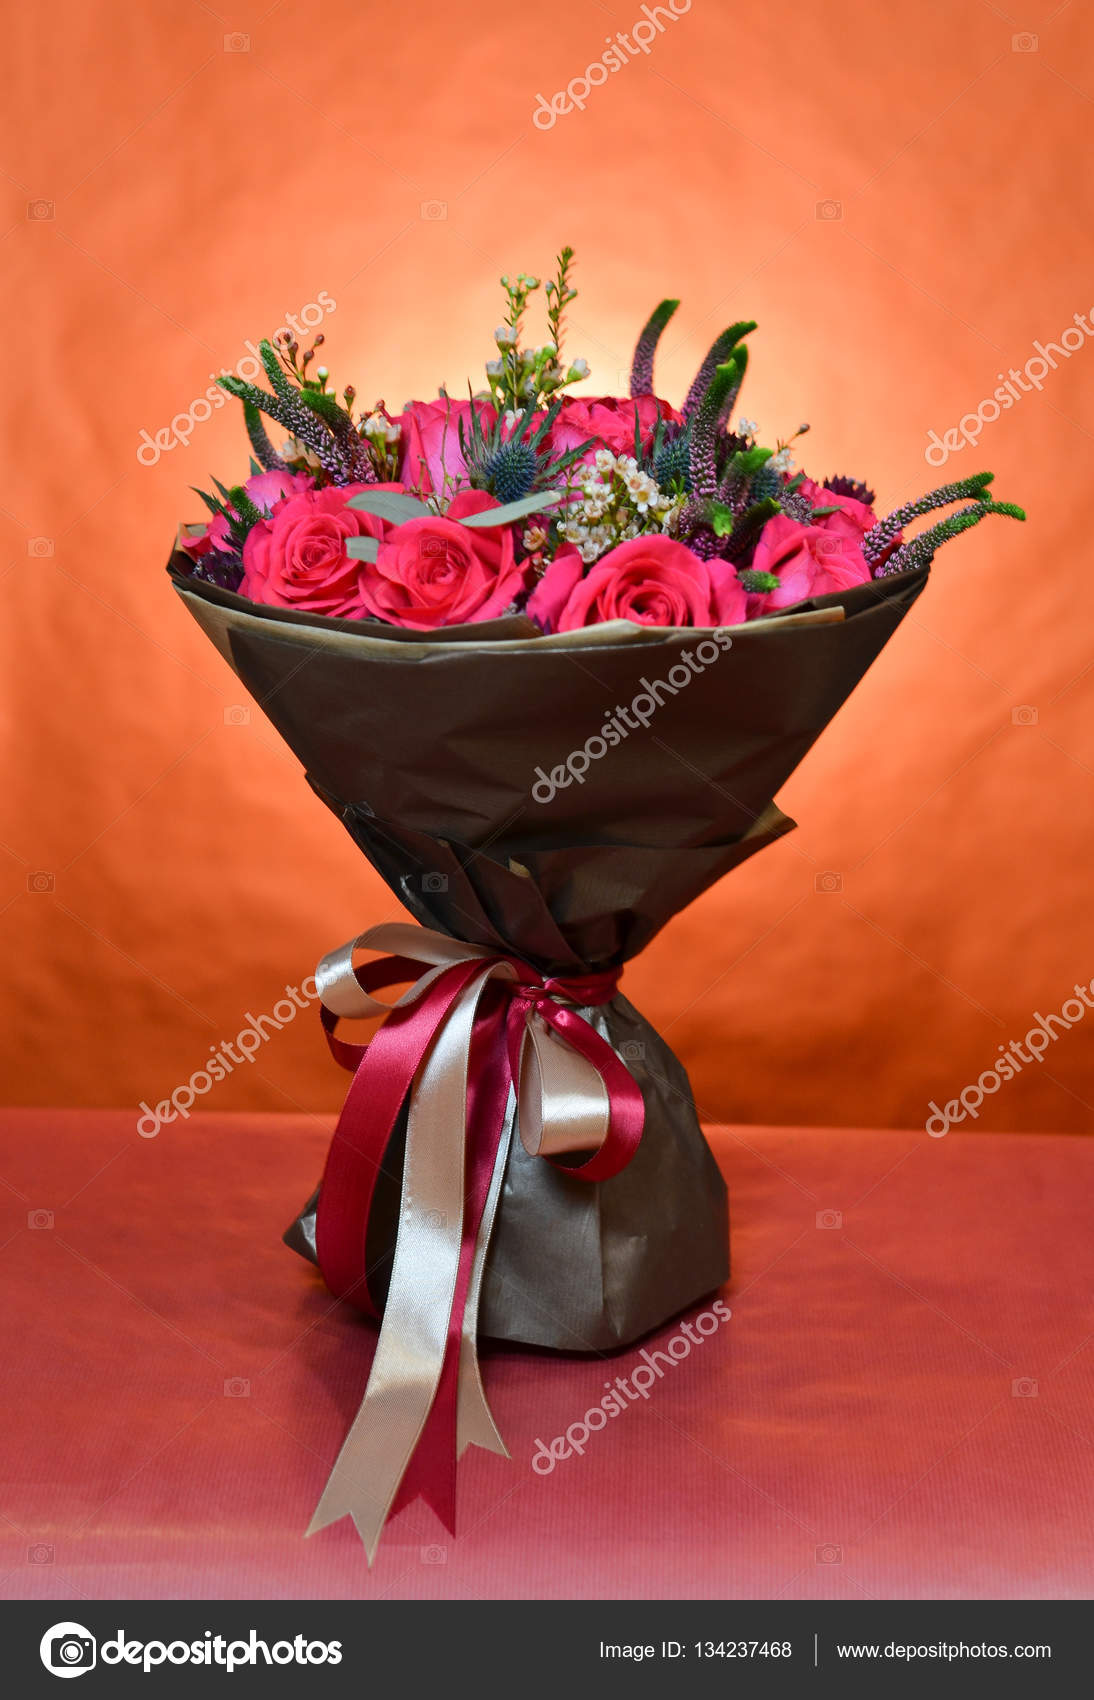 Bouquet Of Roses Wrapped In Brown Paper And Tied With Ribbons